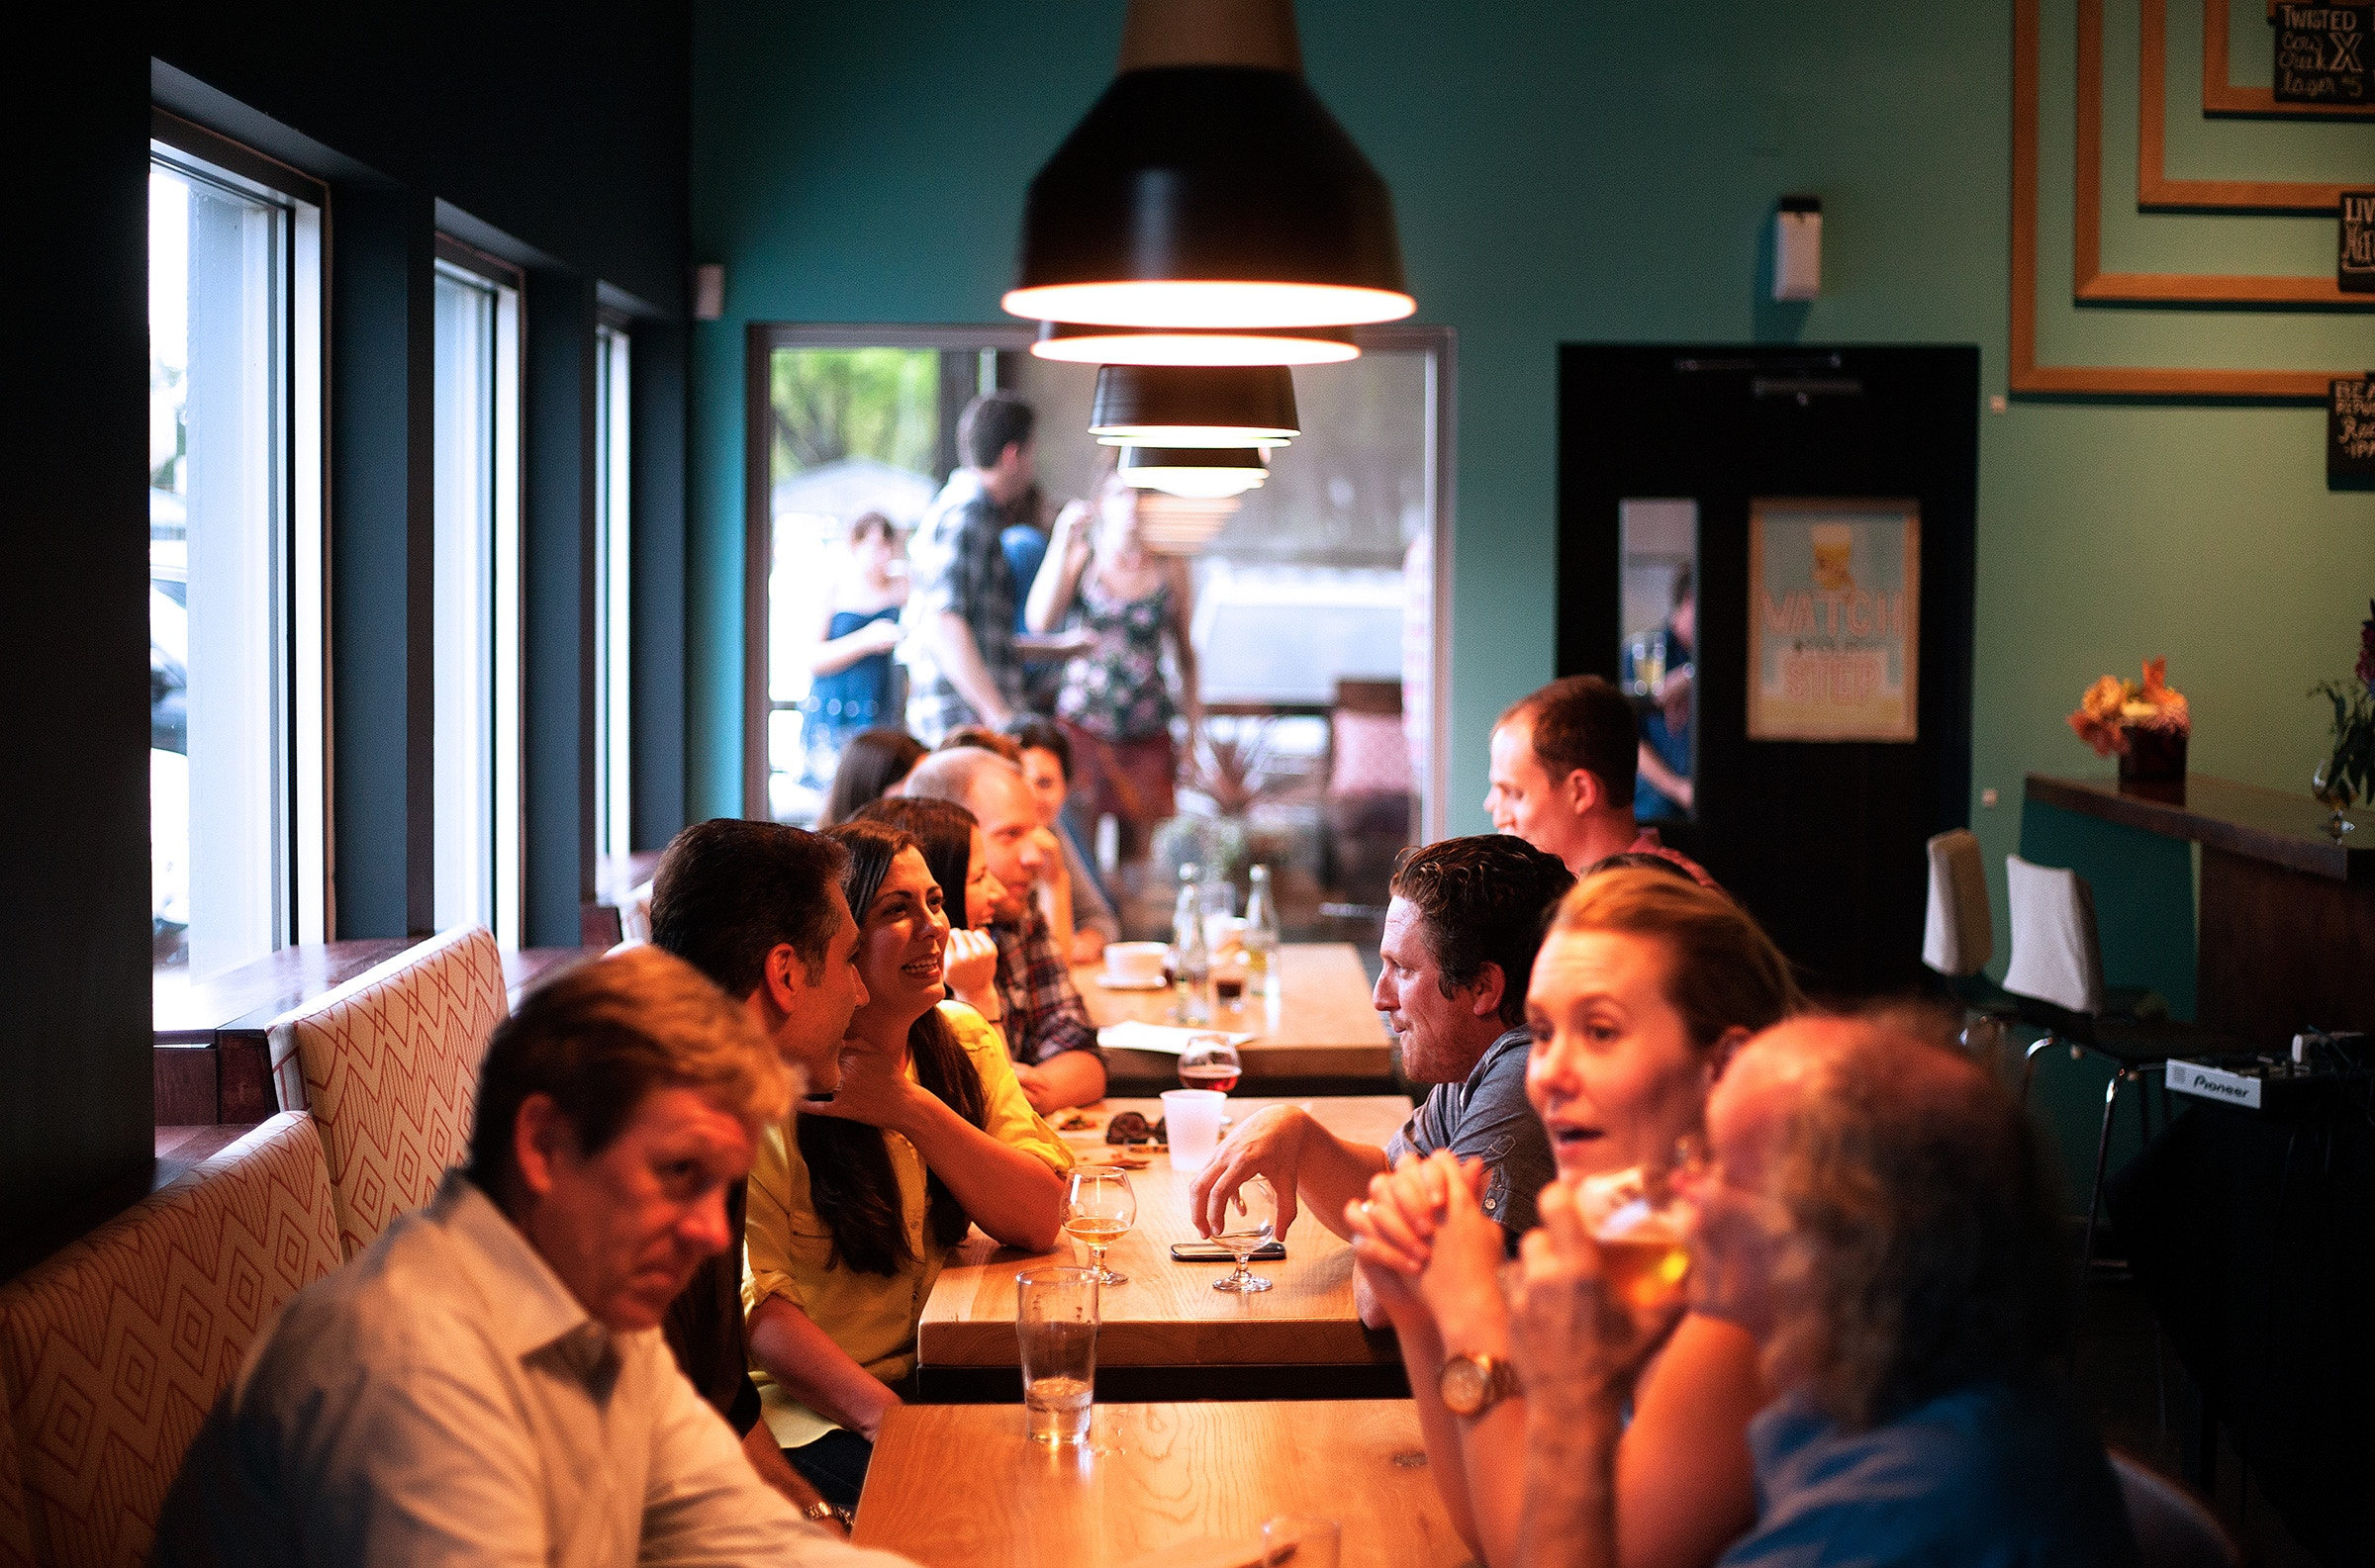 Let's chat - we'd love to hear about your restaurantand how we can work TOGETHER bring it to its fullest potential